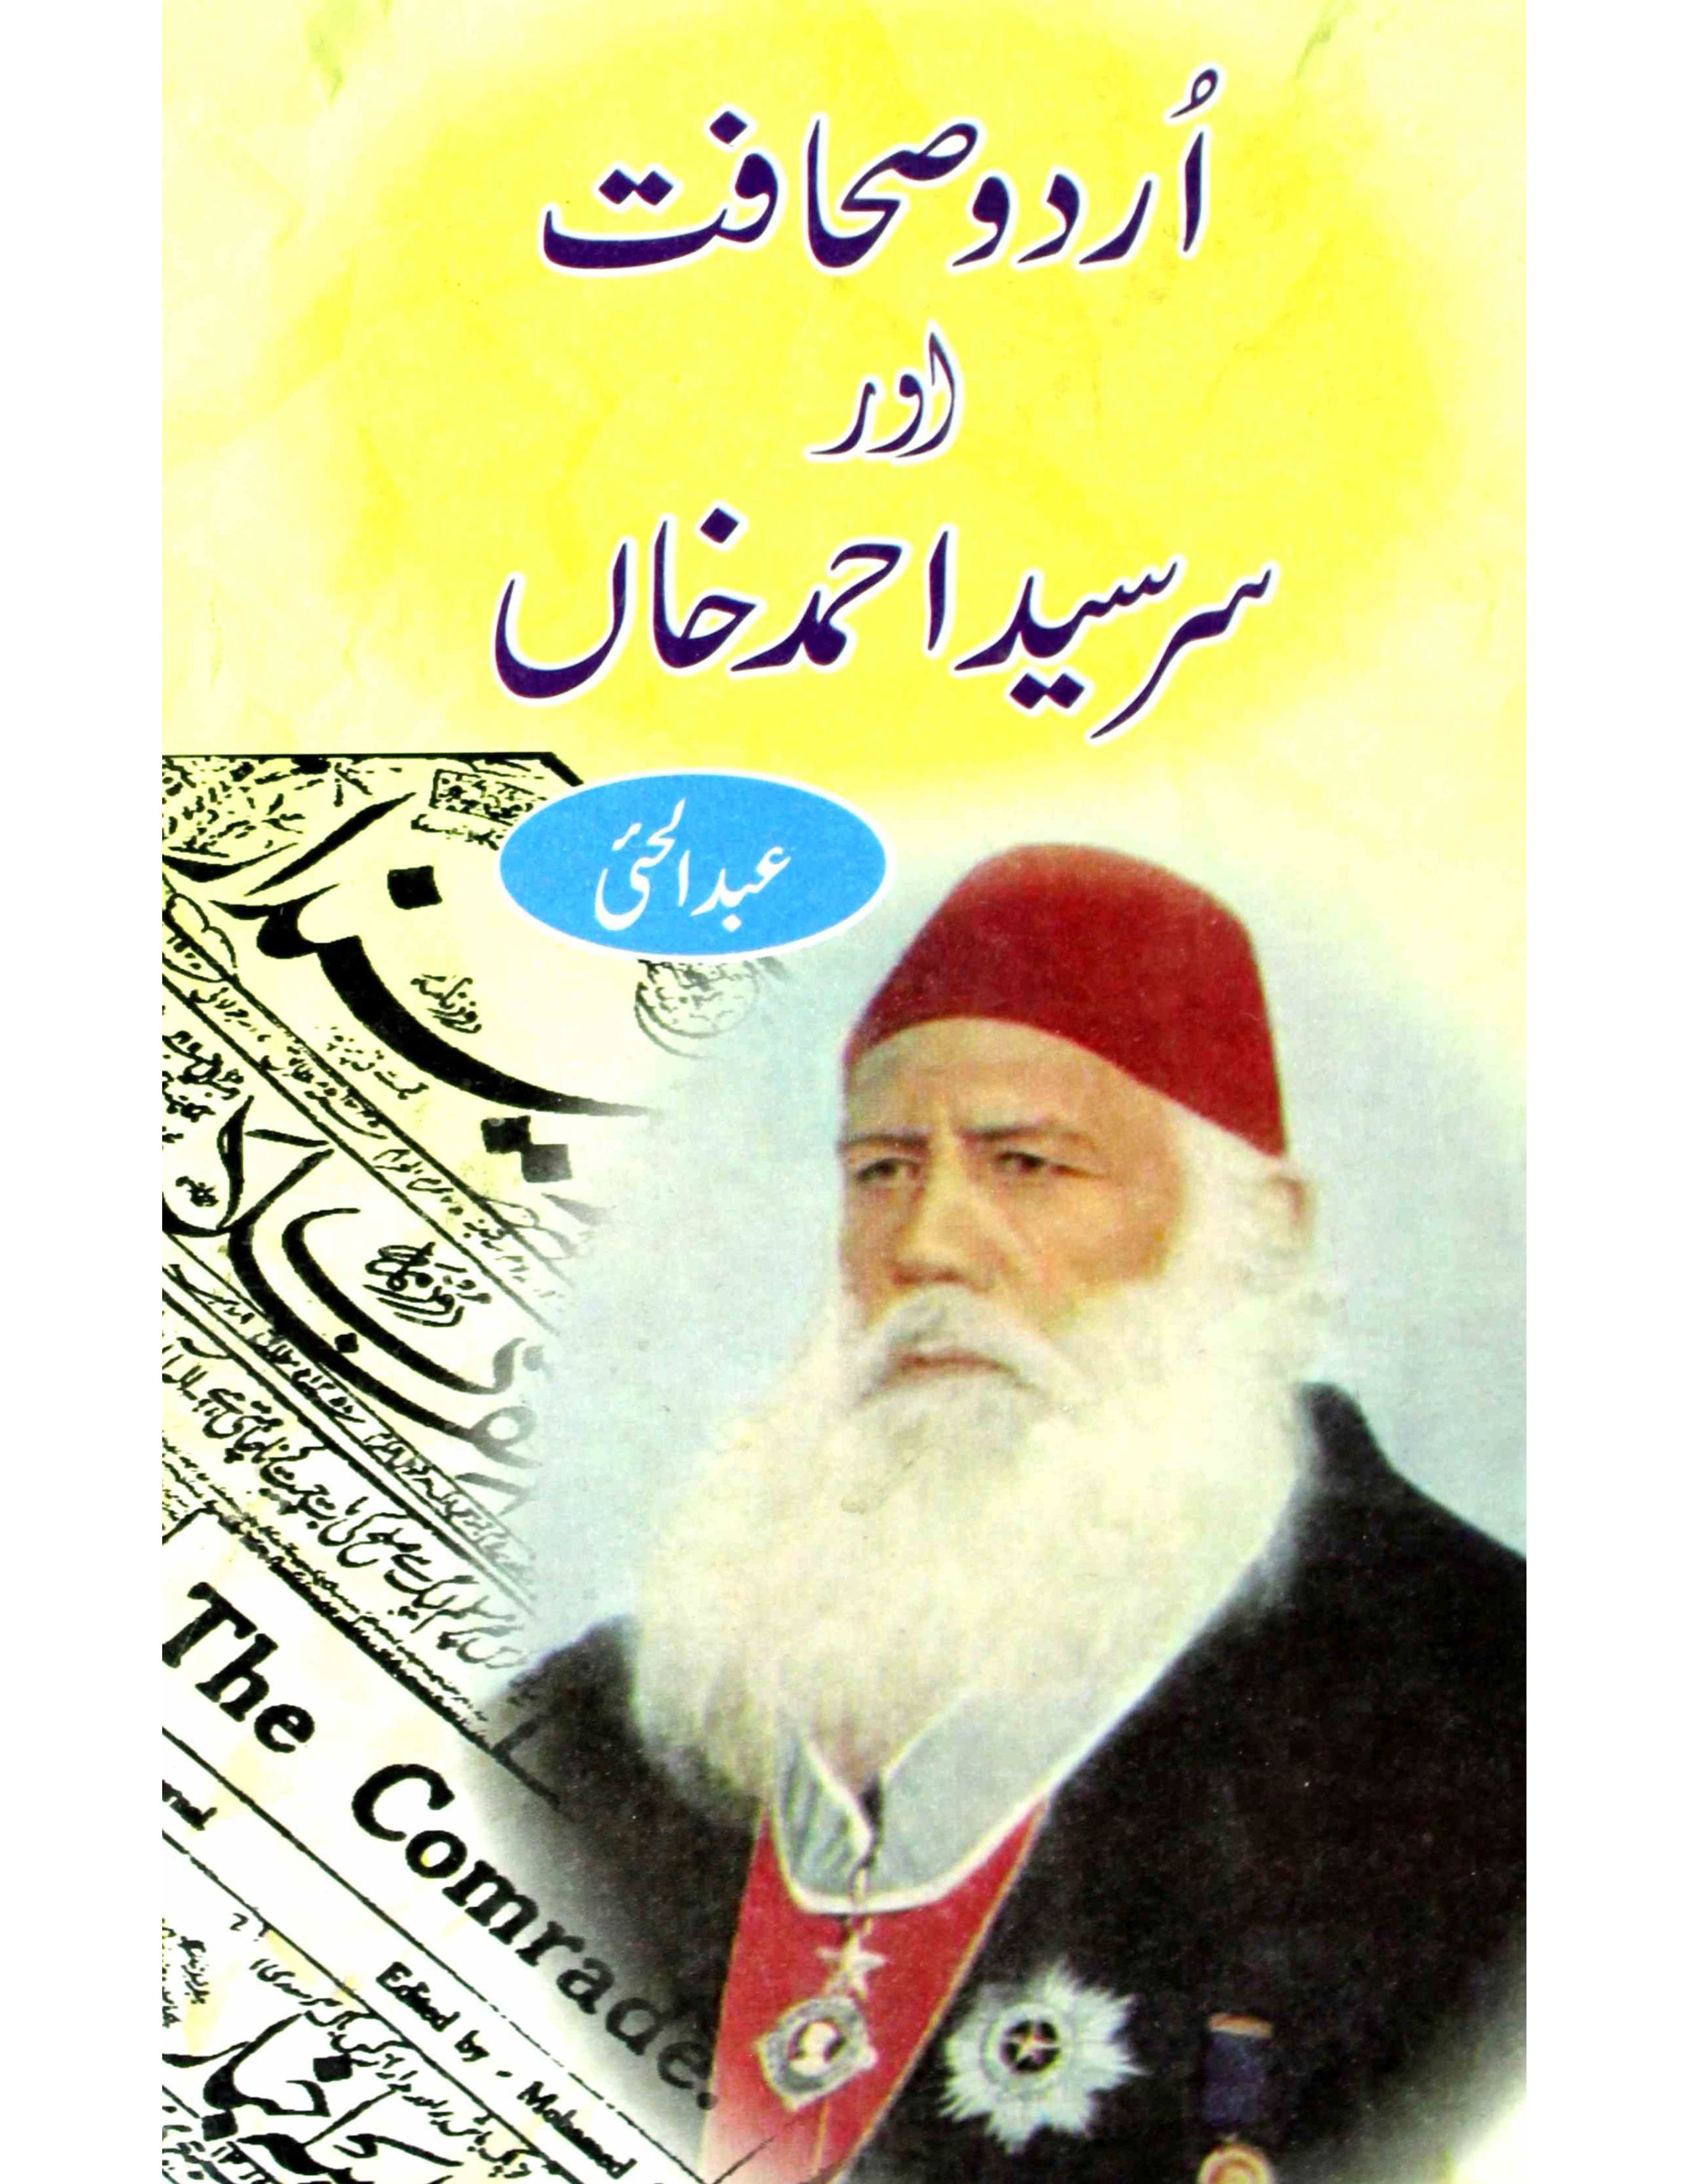 Urdu Sahafat Aur Sir Syed Ahmed Khan